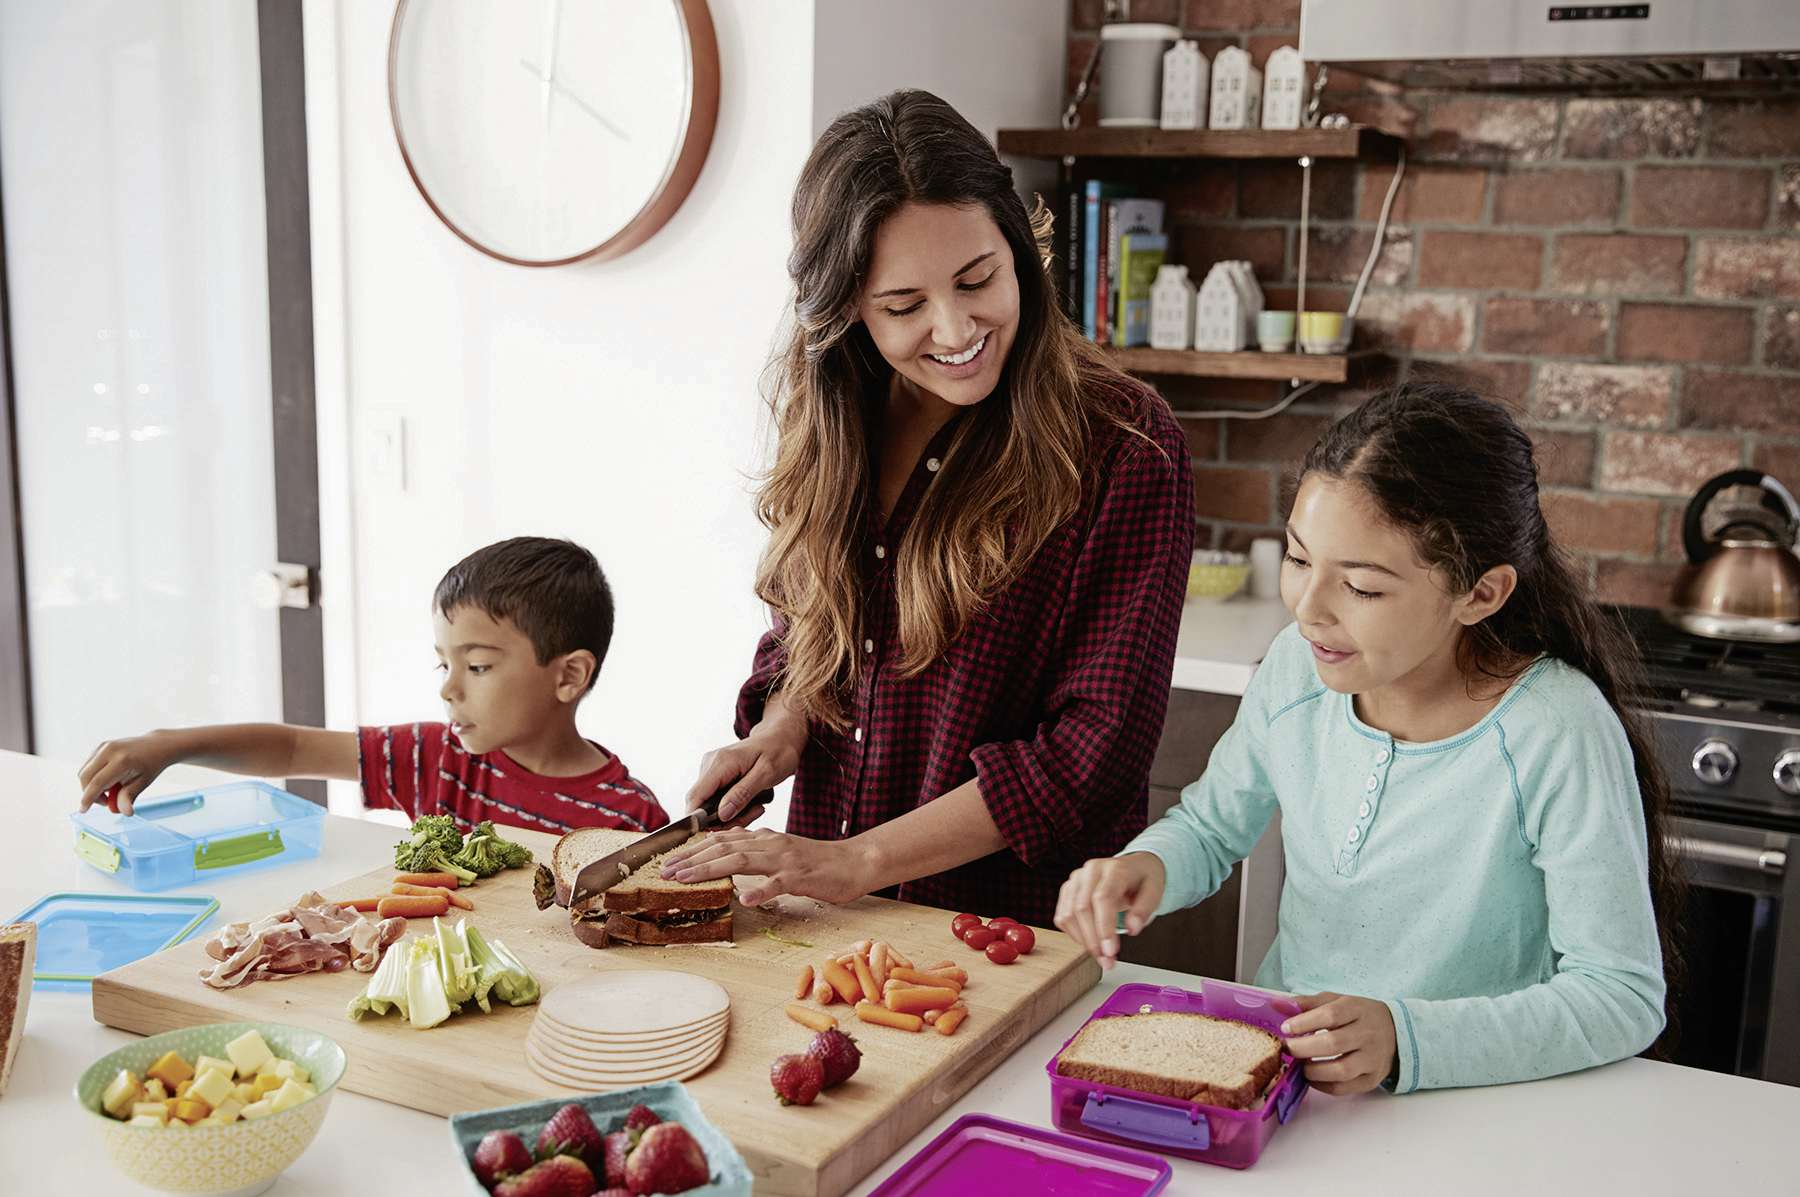 As your kids are learning at school, they can also learn the basics of good nutrition through what you choose to feed them at home and in their school lunches.